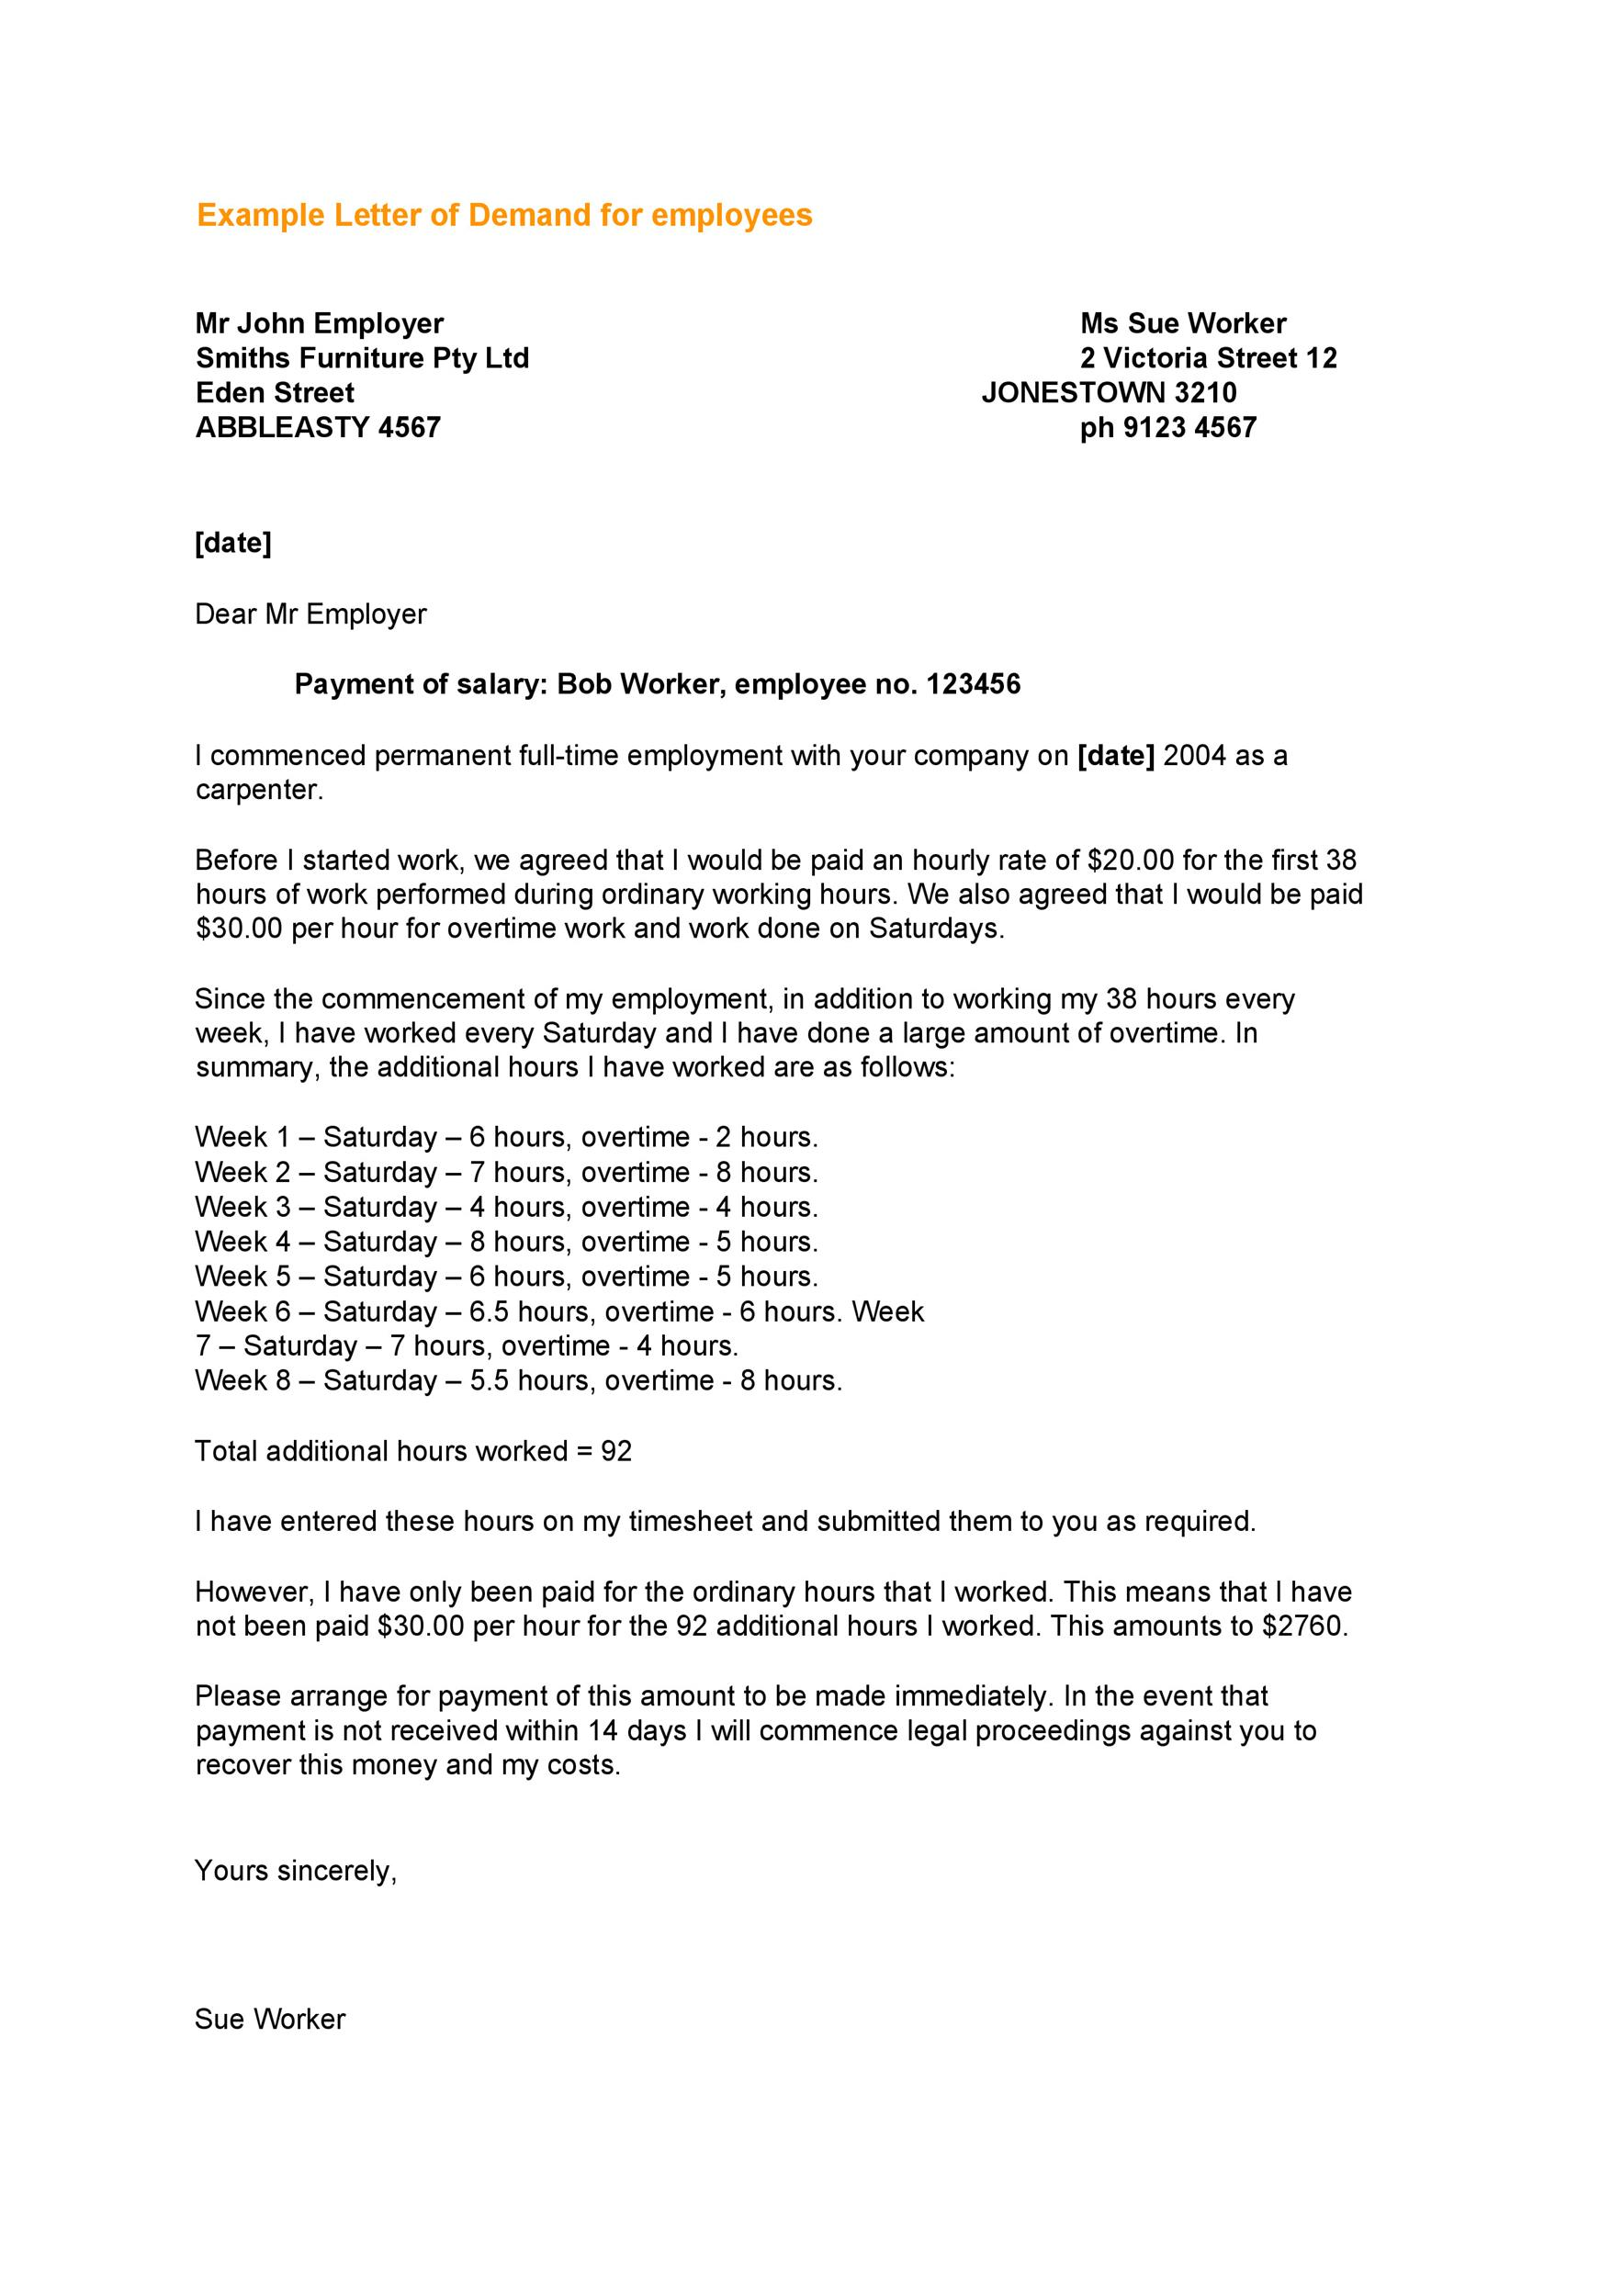 Demand-Letter-Template-19 Salary Demand Letter Template on for suiting companies, for quality, earnest money, insurance company, for injury, editable free, diminished value, for services, don compton book, turning robocalls into cash, free download print, sample security deposit, for damages,